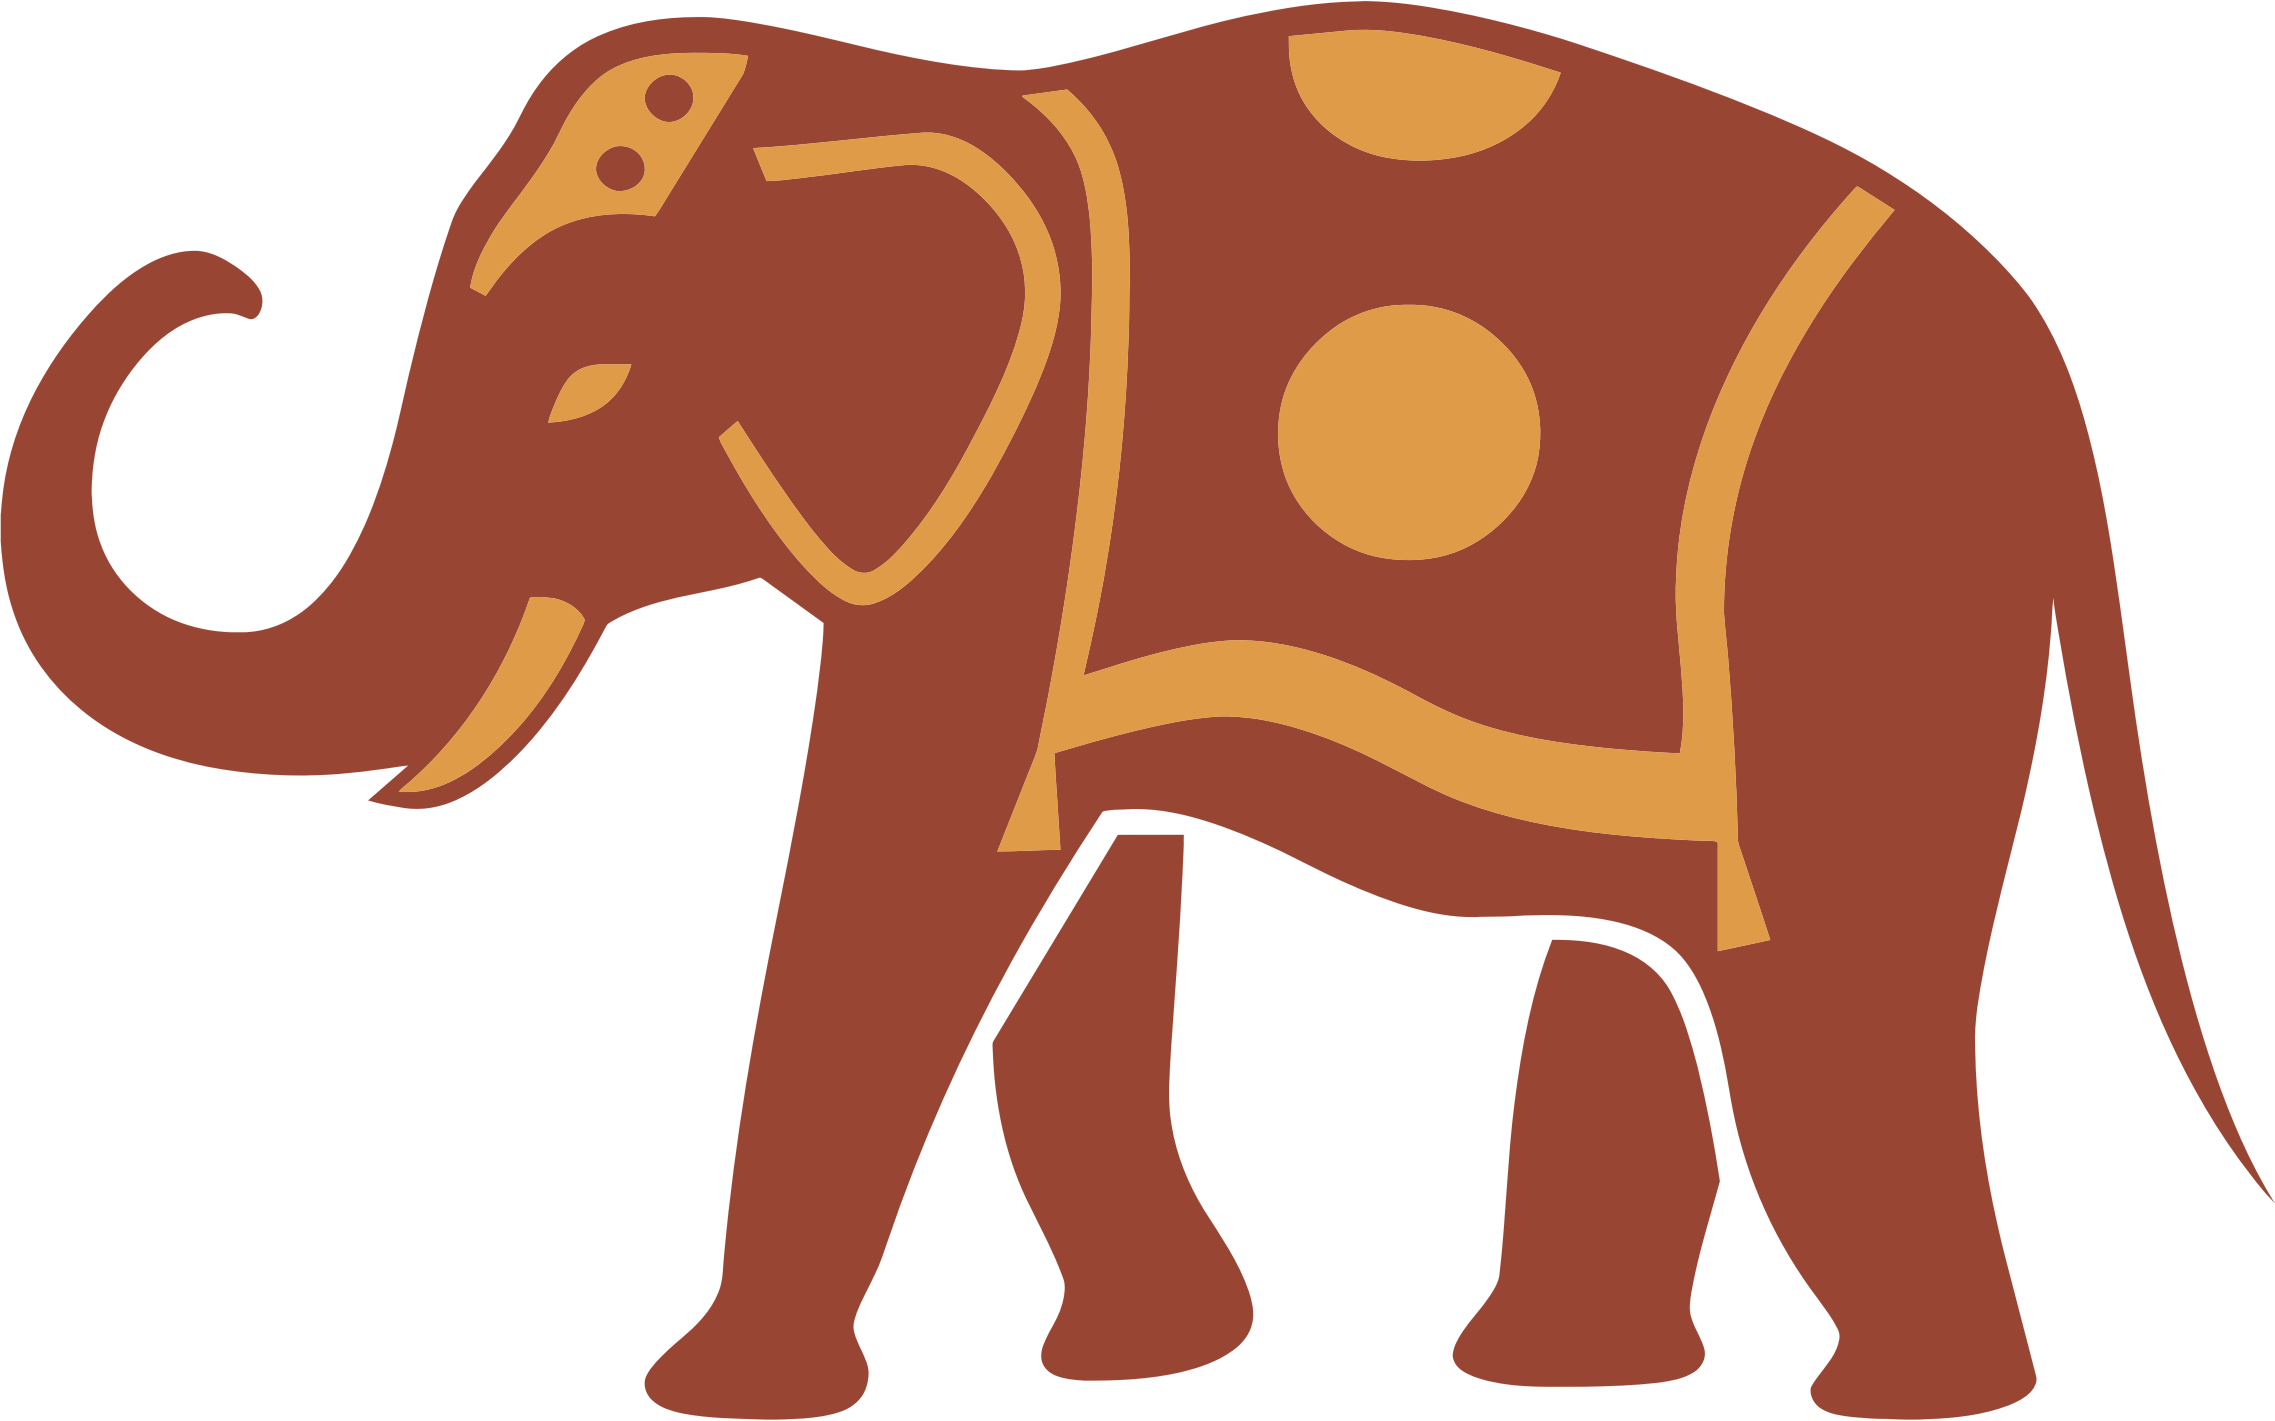 microsoft clip art elephant - photo #39